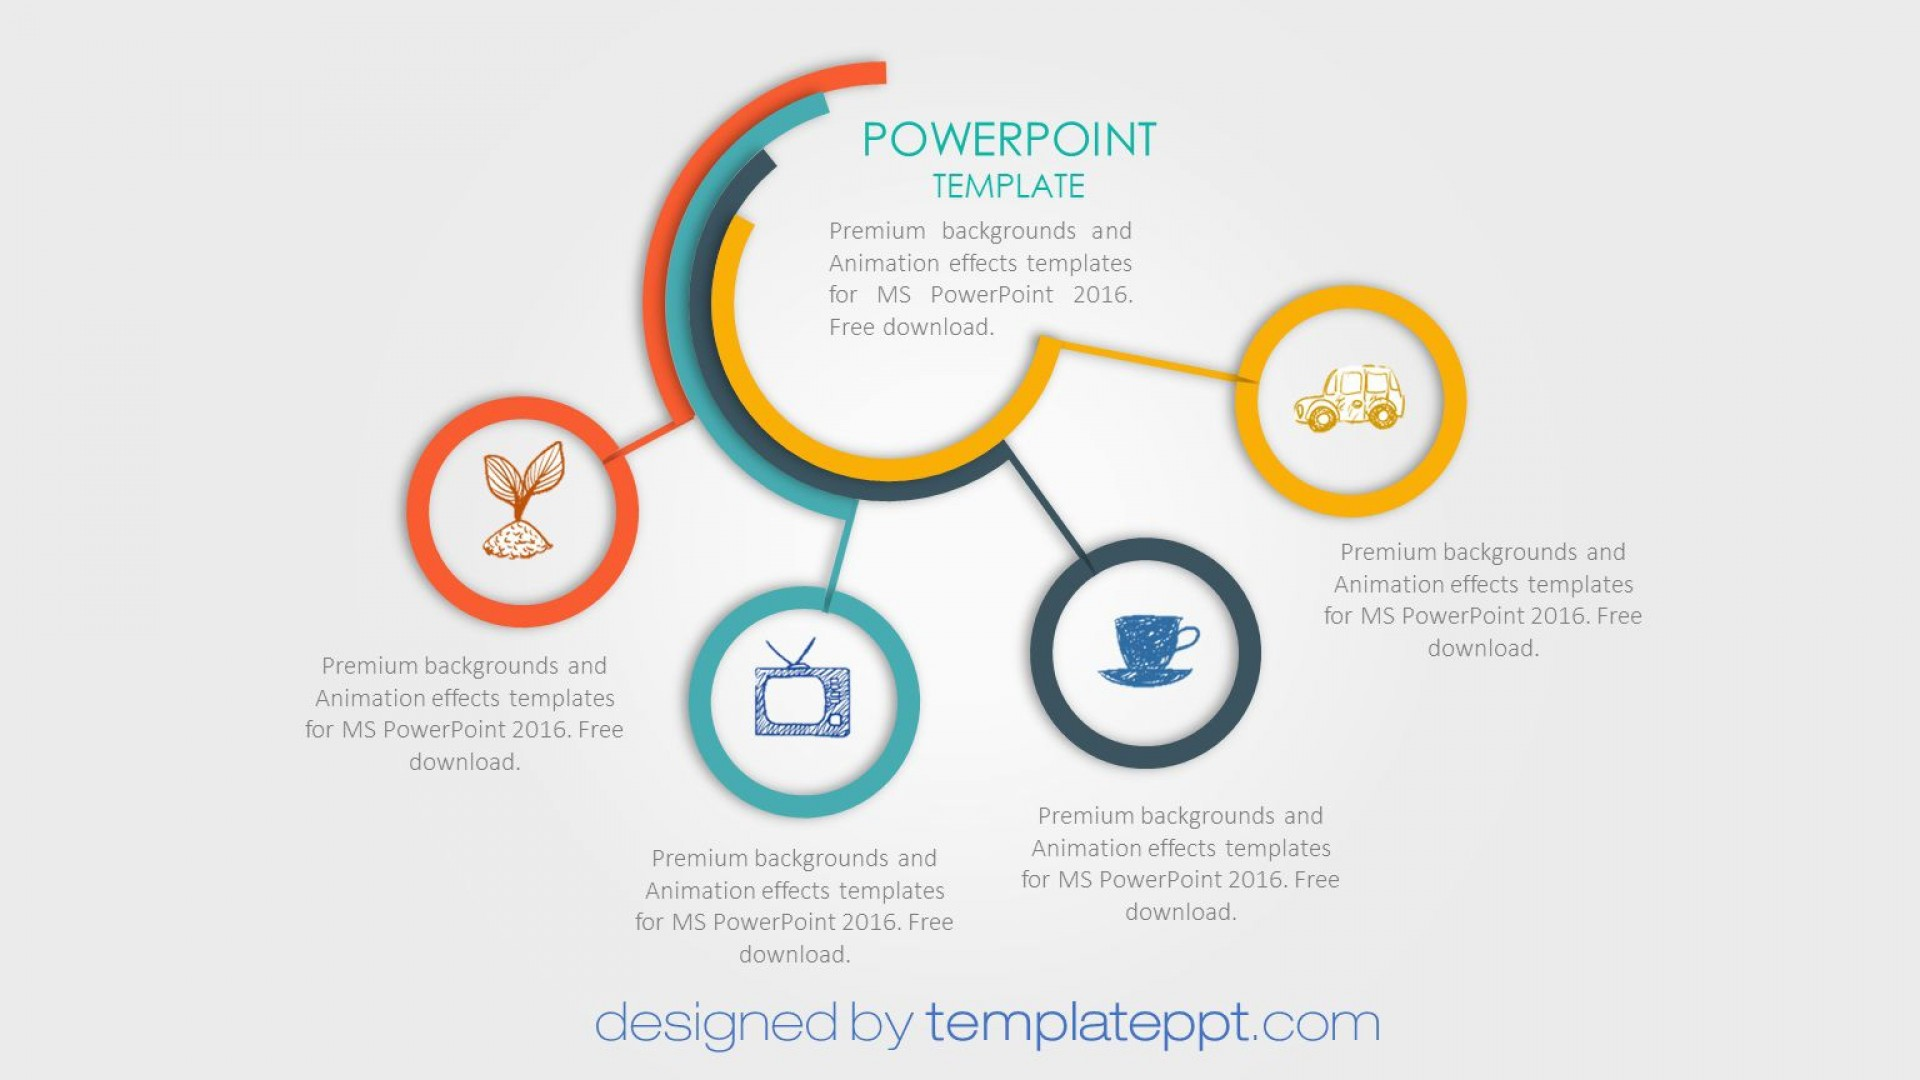 000 Imposing Professional Powerpoint Template Free Photo  Download 2019 Medical Mac1920